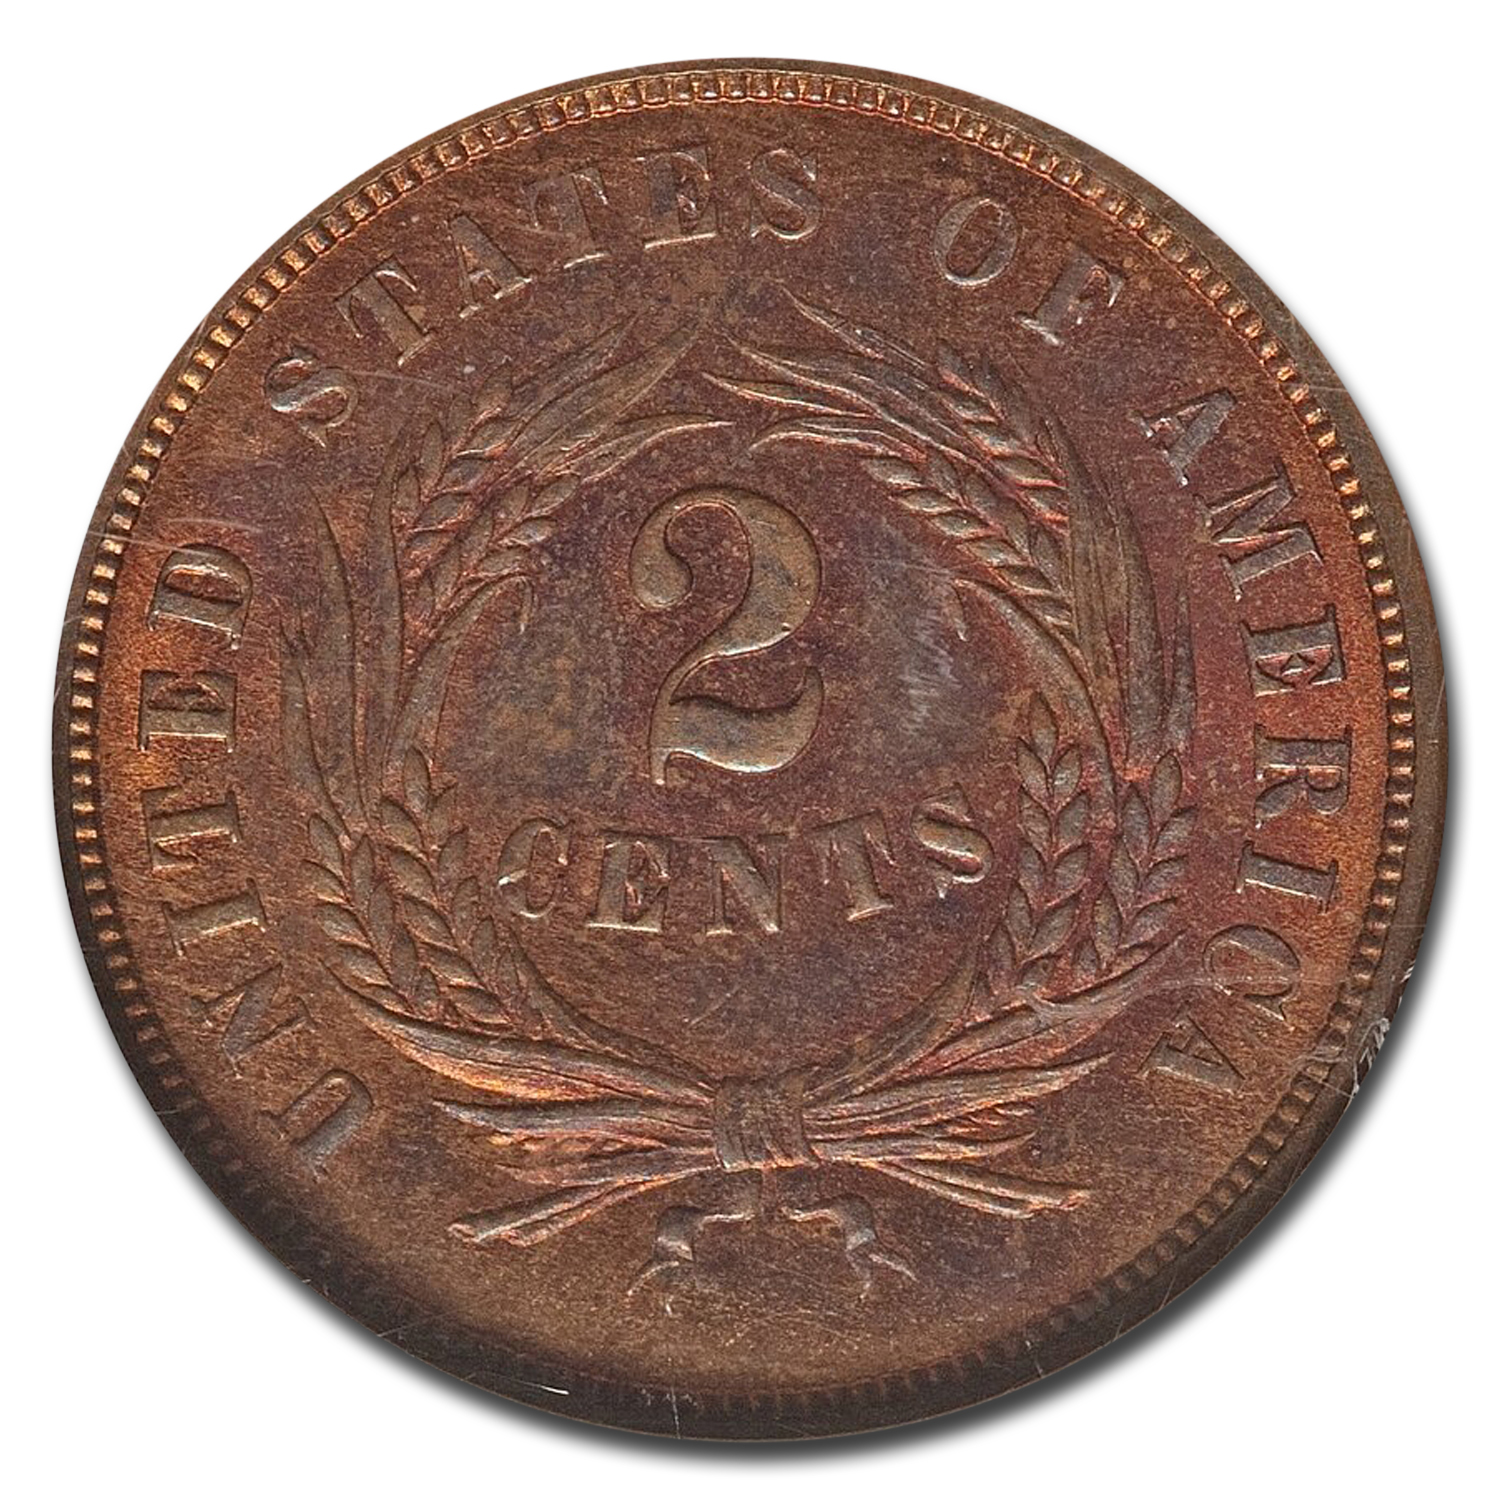 1864 two cent piece large cent